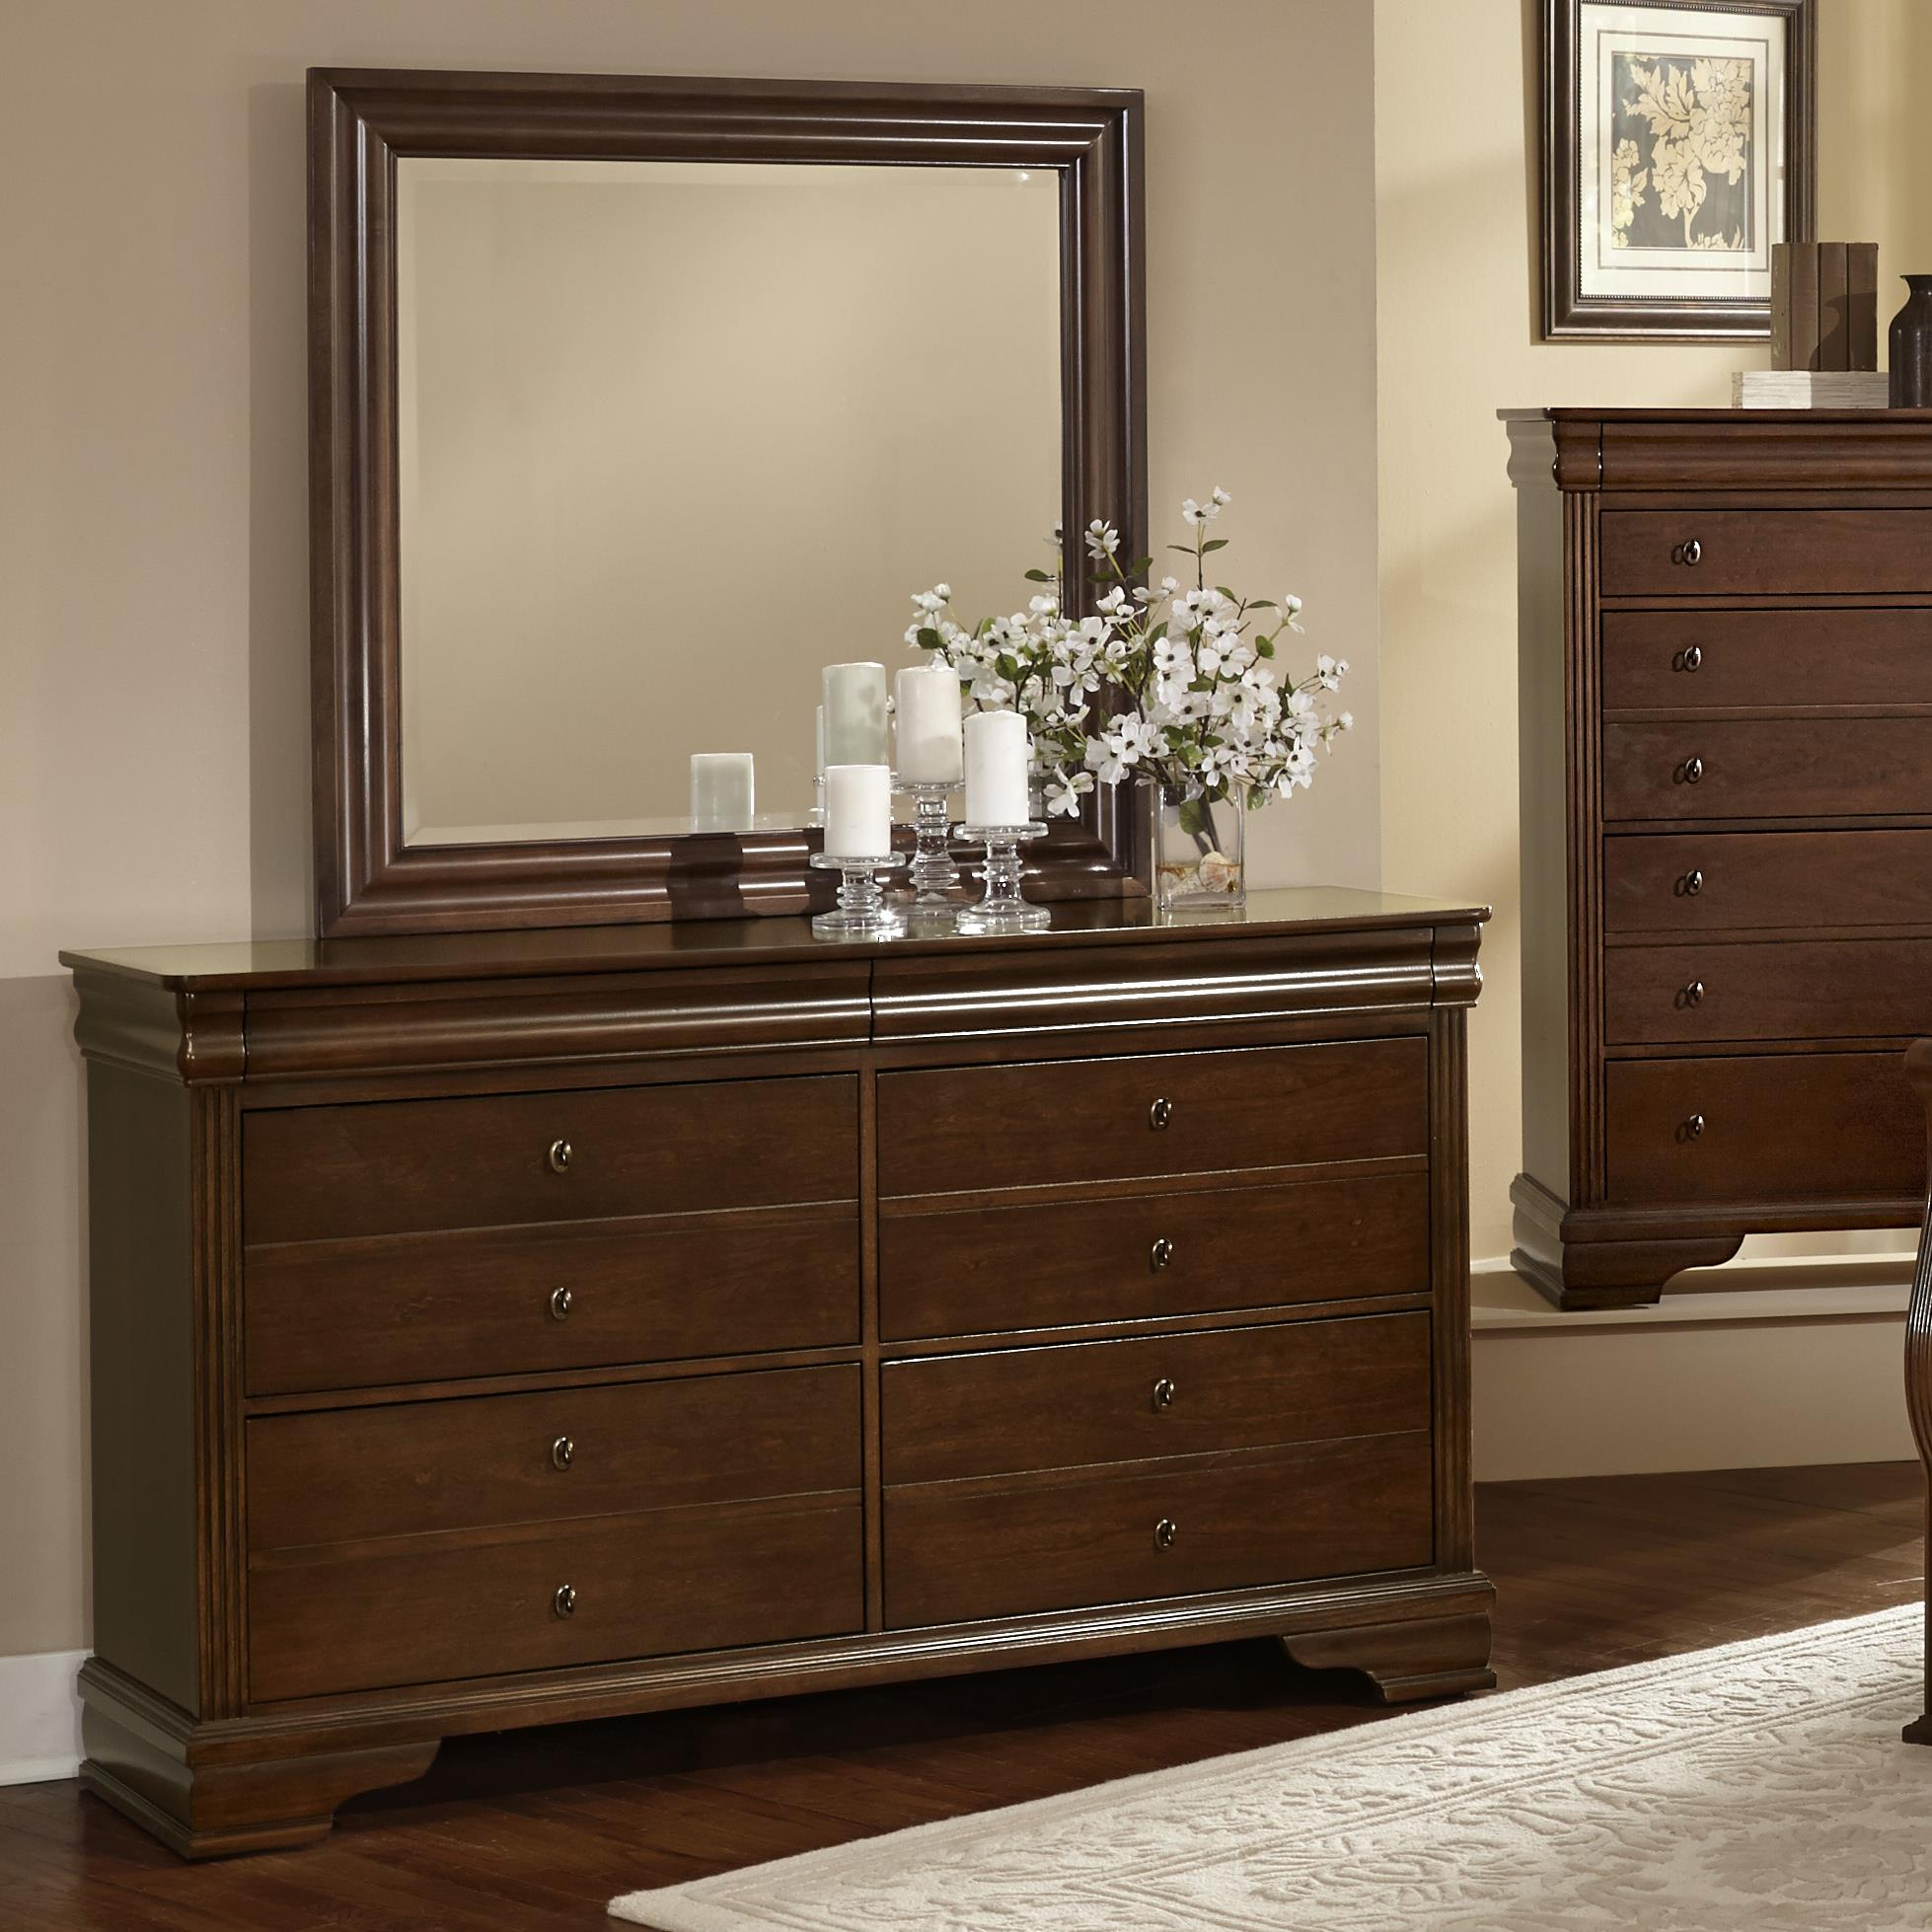 Vaughan Bassett French Market Dresser & Landscape Mirror - Item Number: 382-002+446